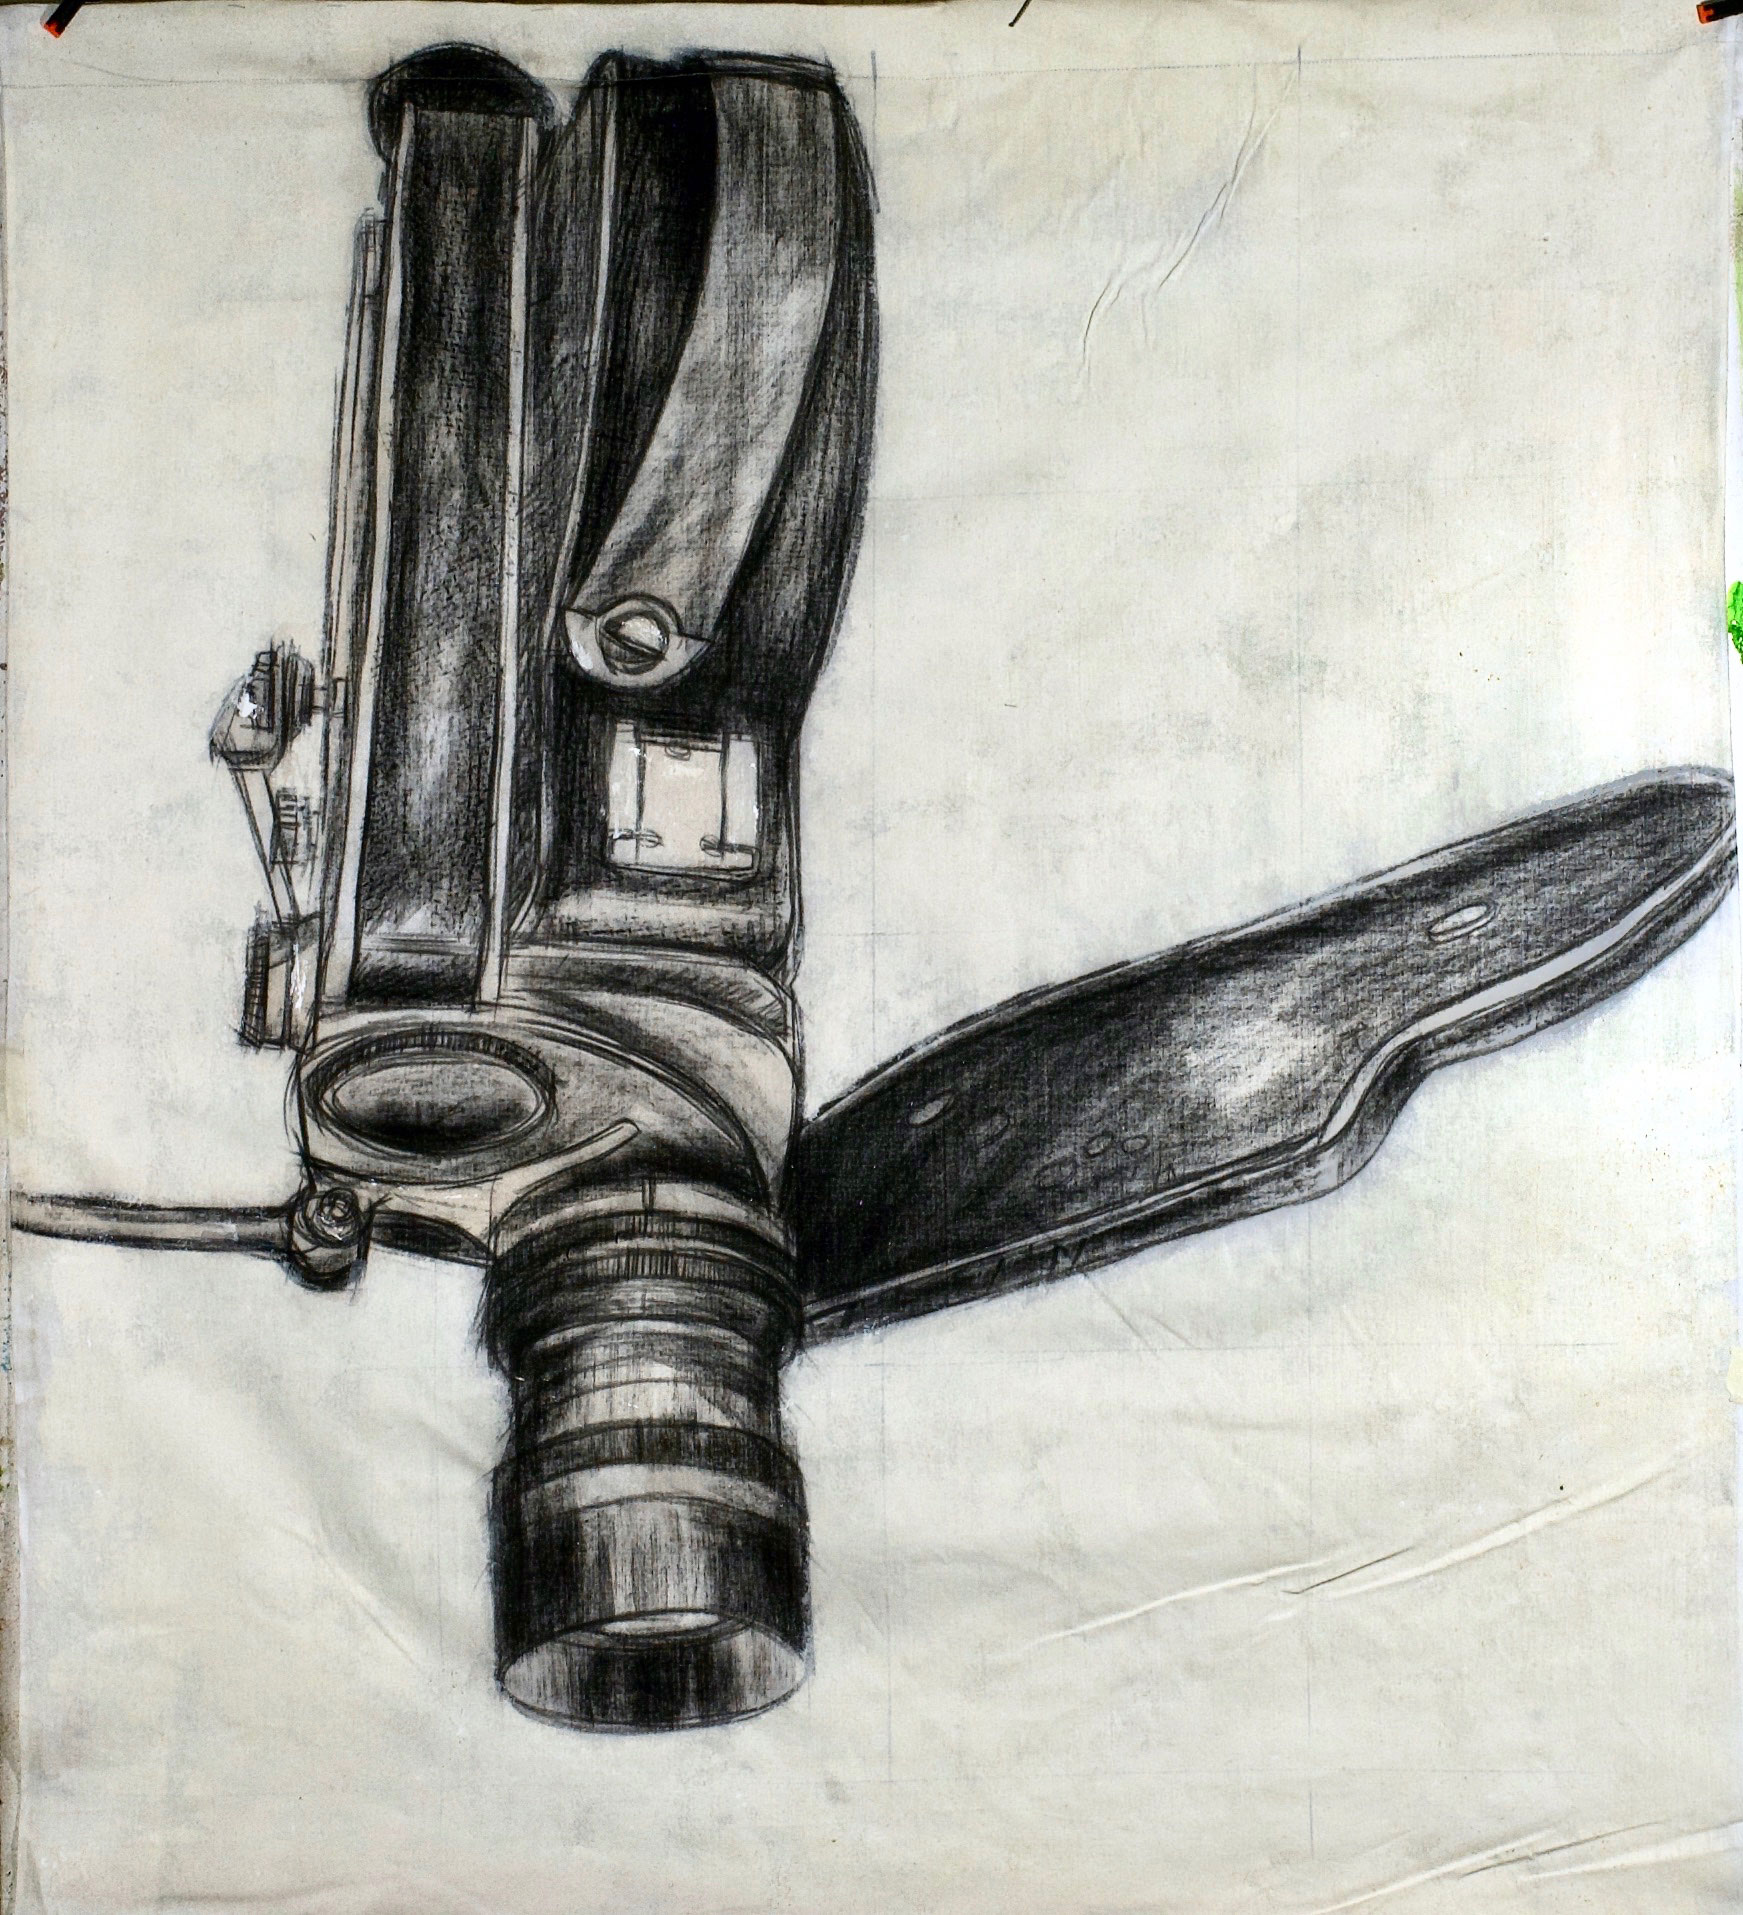 6-x-4'-charcoal-drawings-on-fabric-(5).jpg